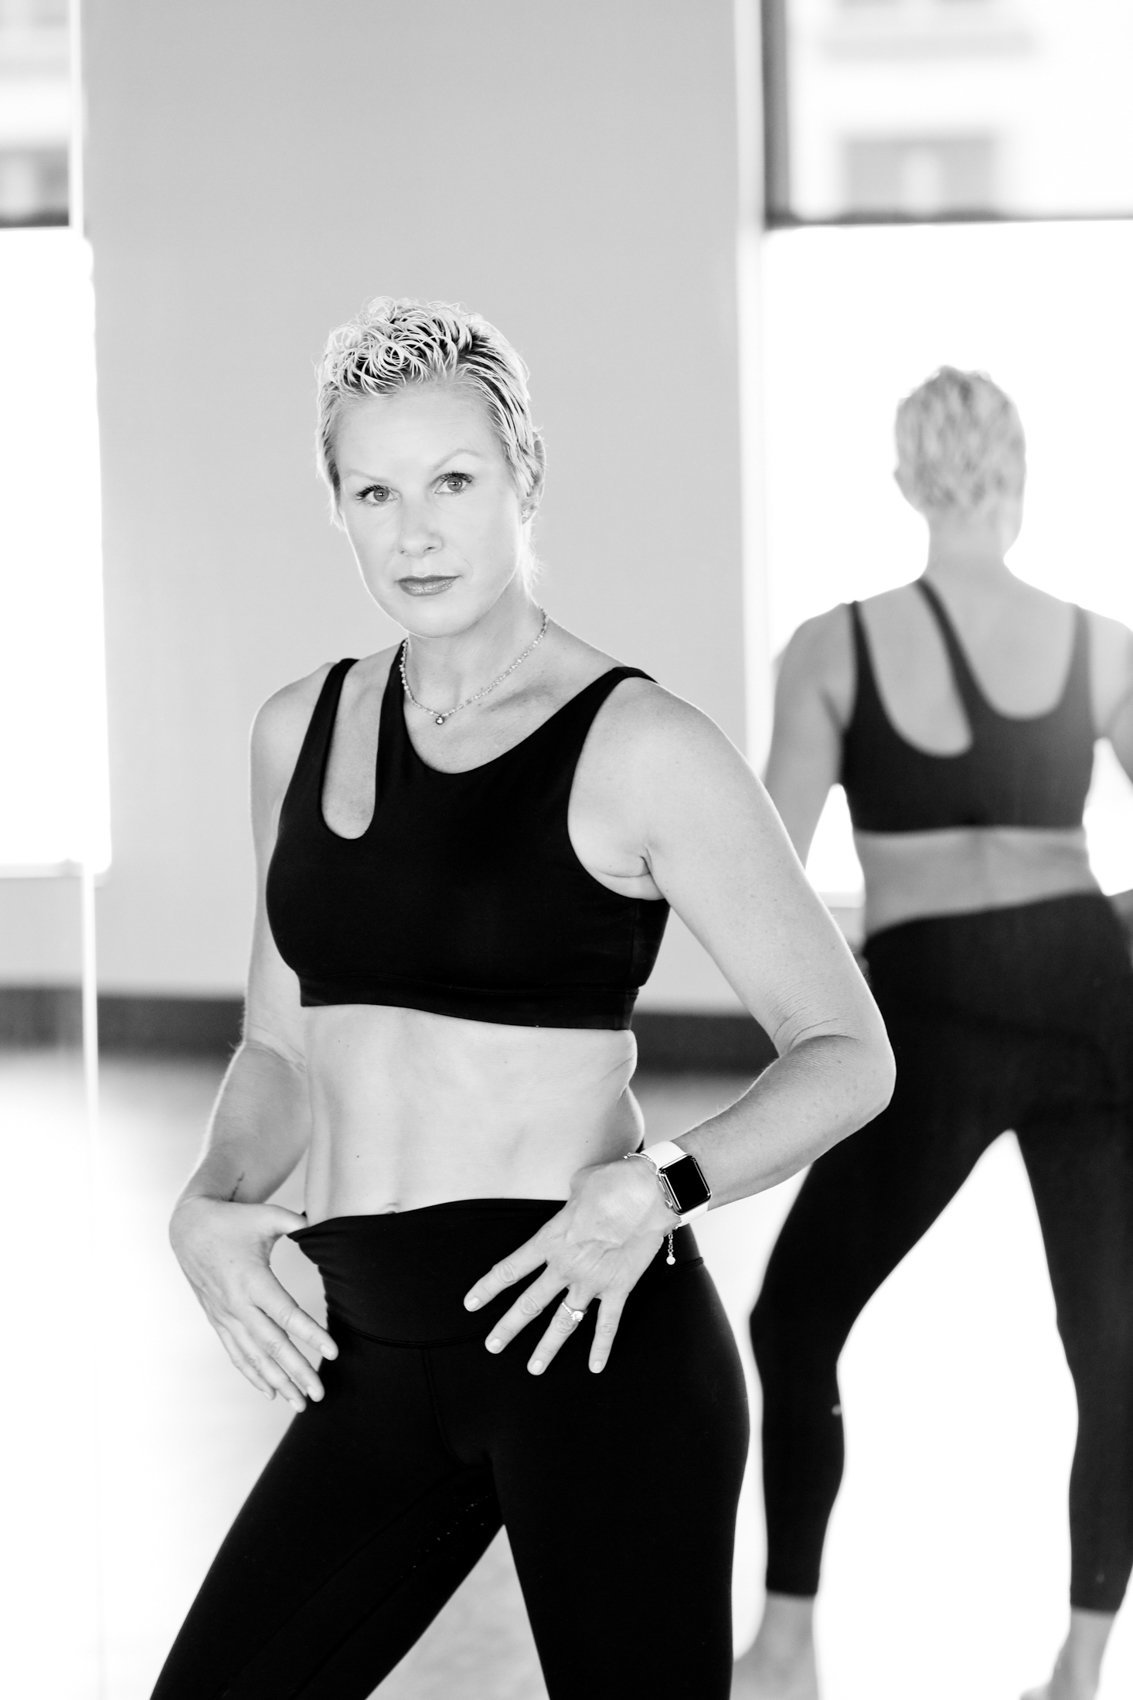 Dance studio photoshoot, bay area fitness instructor